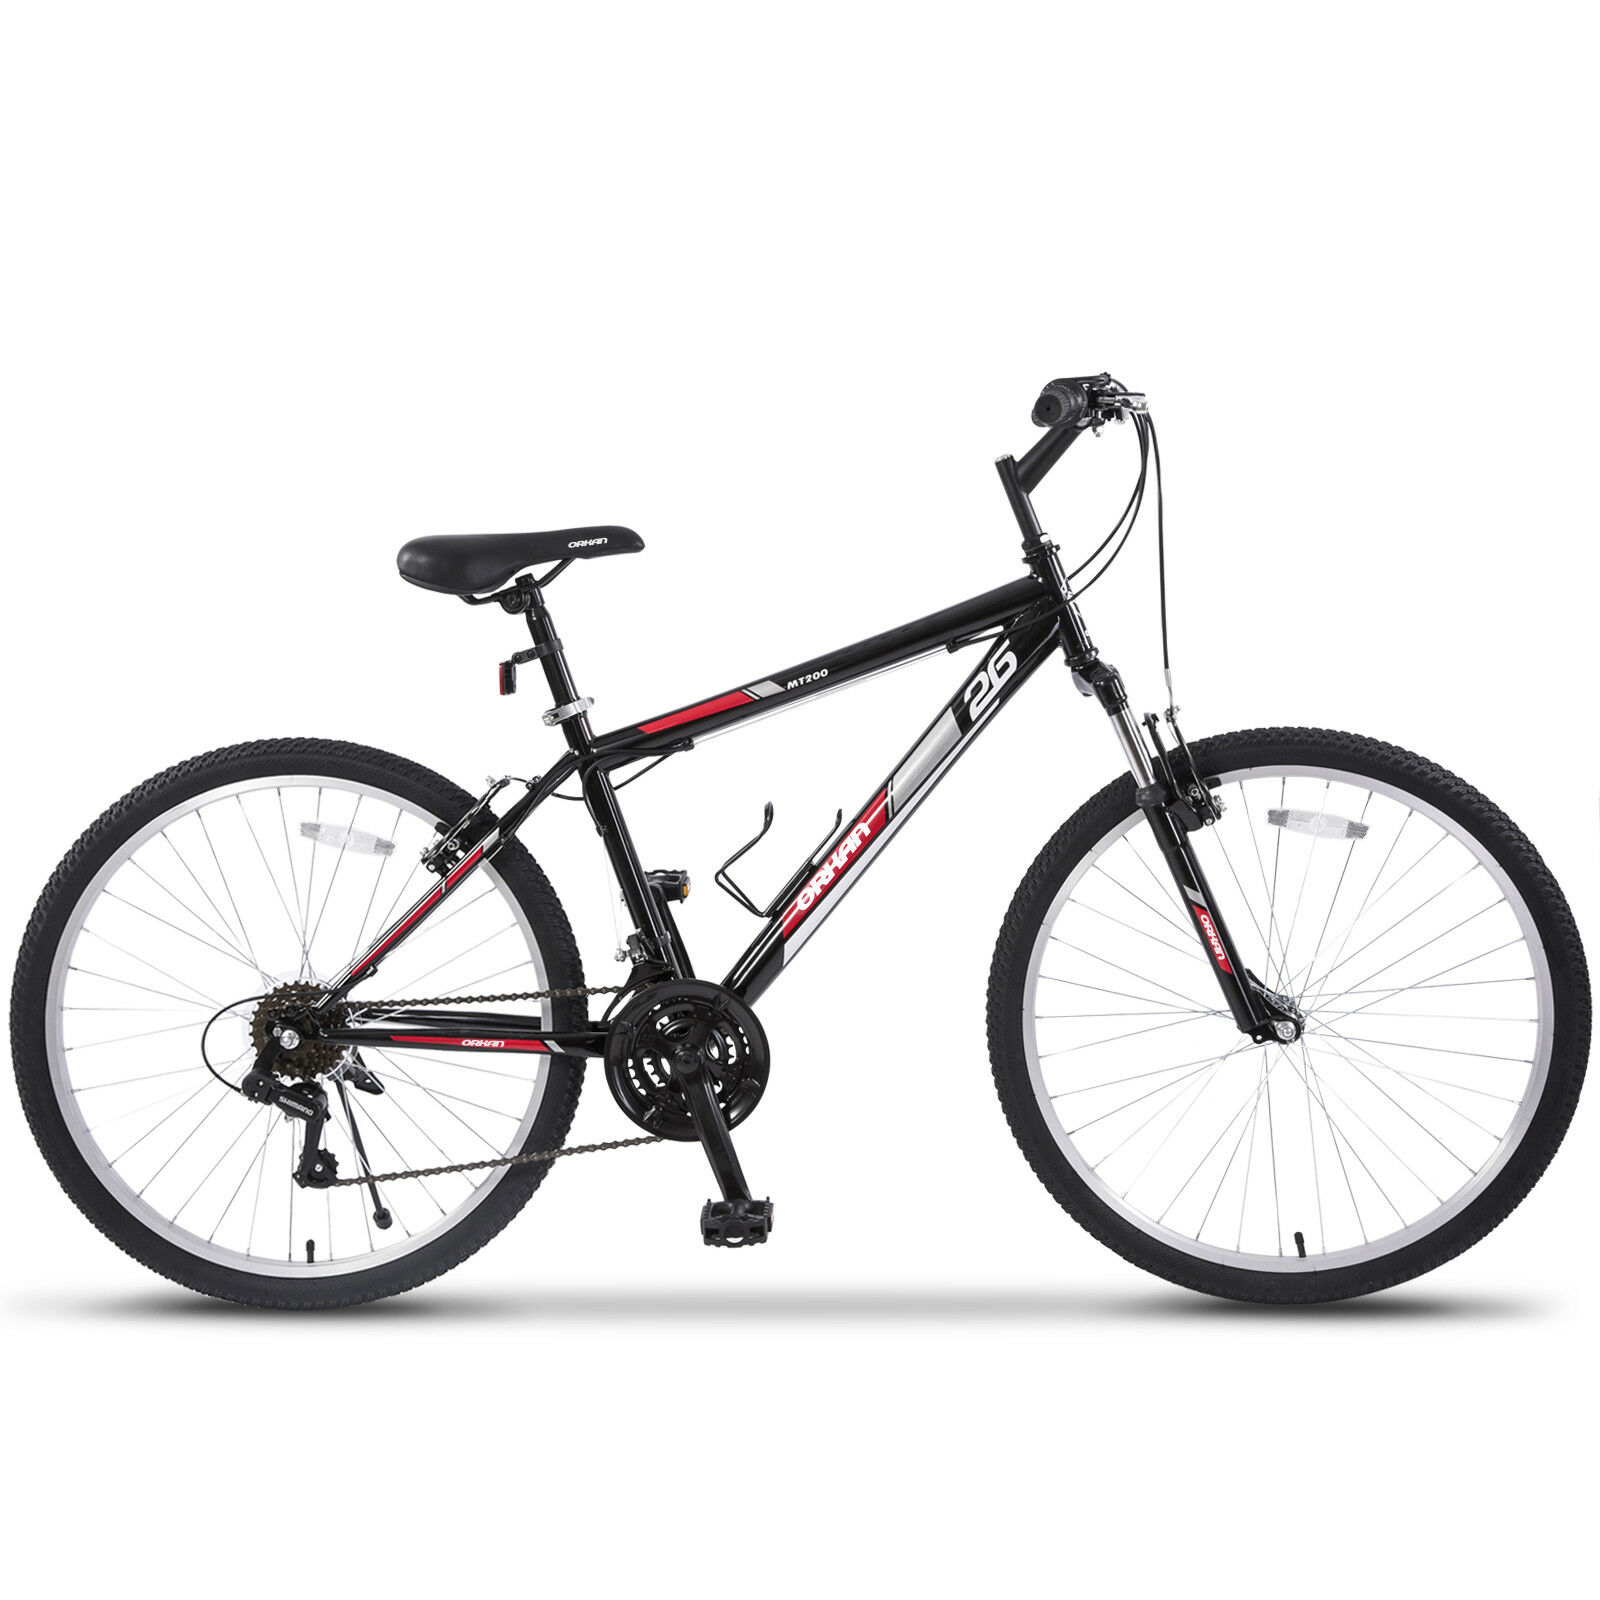 Hybrid Bicycles Details About 26 Mountain Bike Hybrid Bike 18 Speed Front Suspension Shimano Bicycles Black